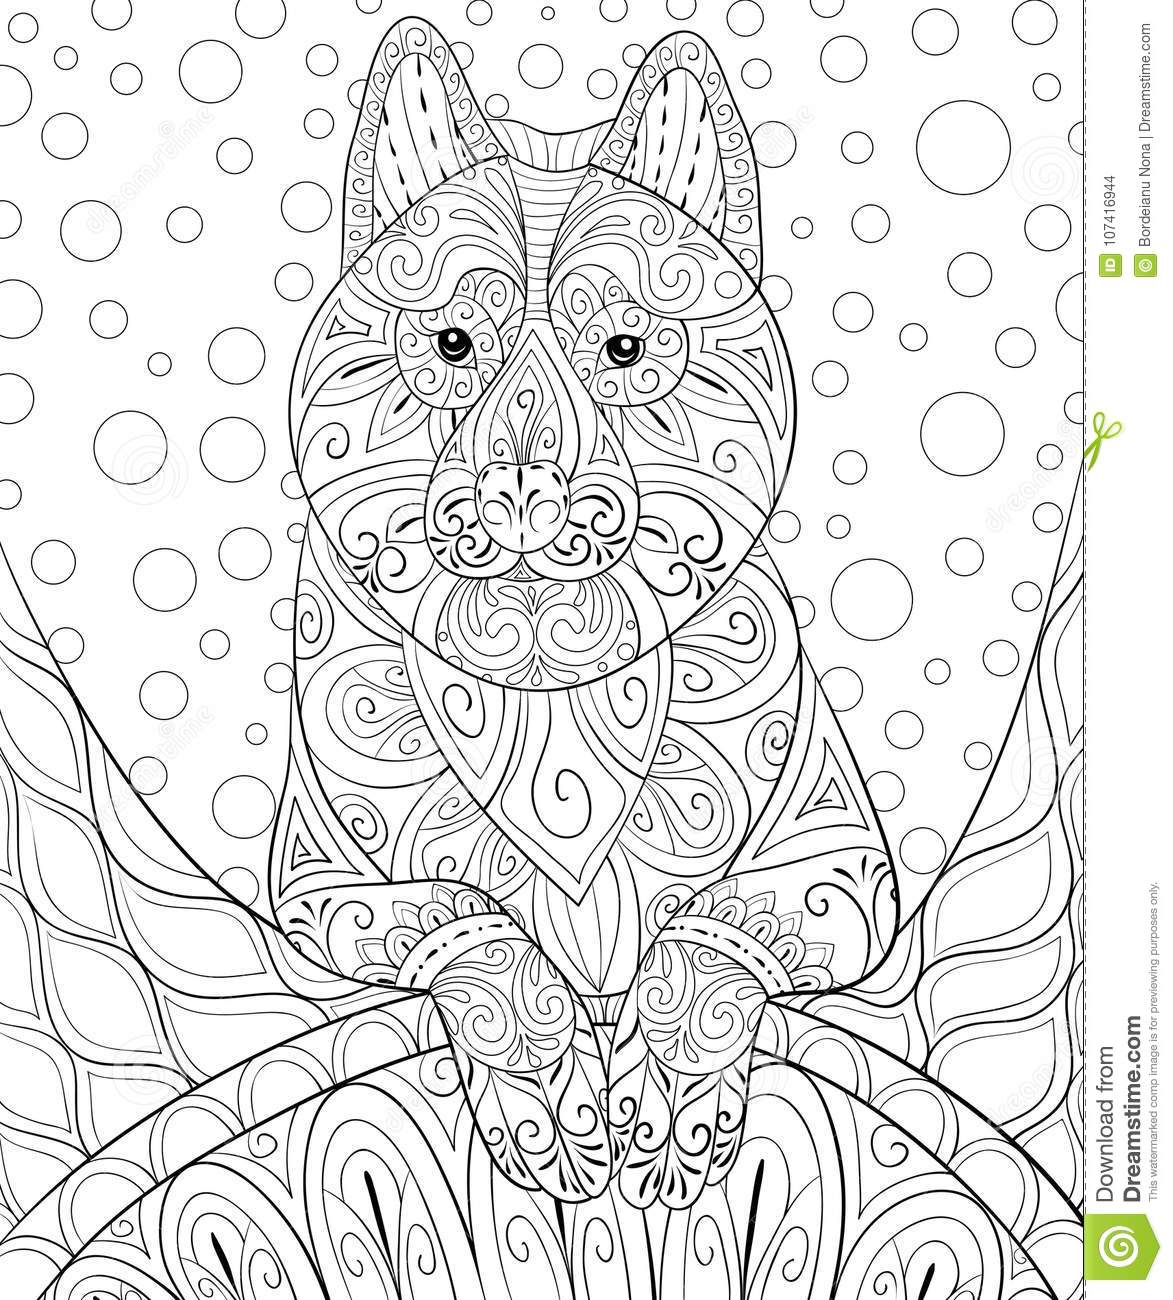 Adult Coloring Bookpage A Cute Dog On The Abstract Background For RelaxingZen Art Style Illustration Stock Vector